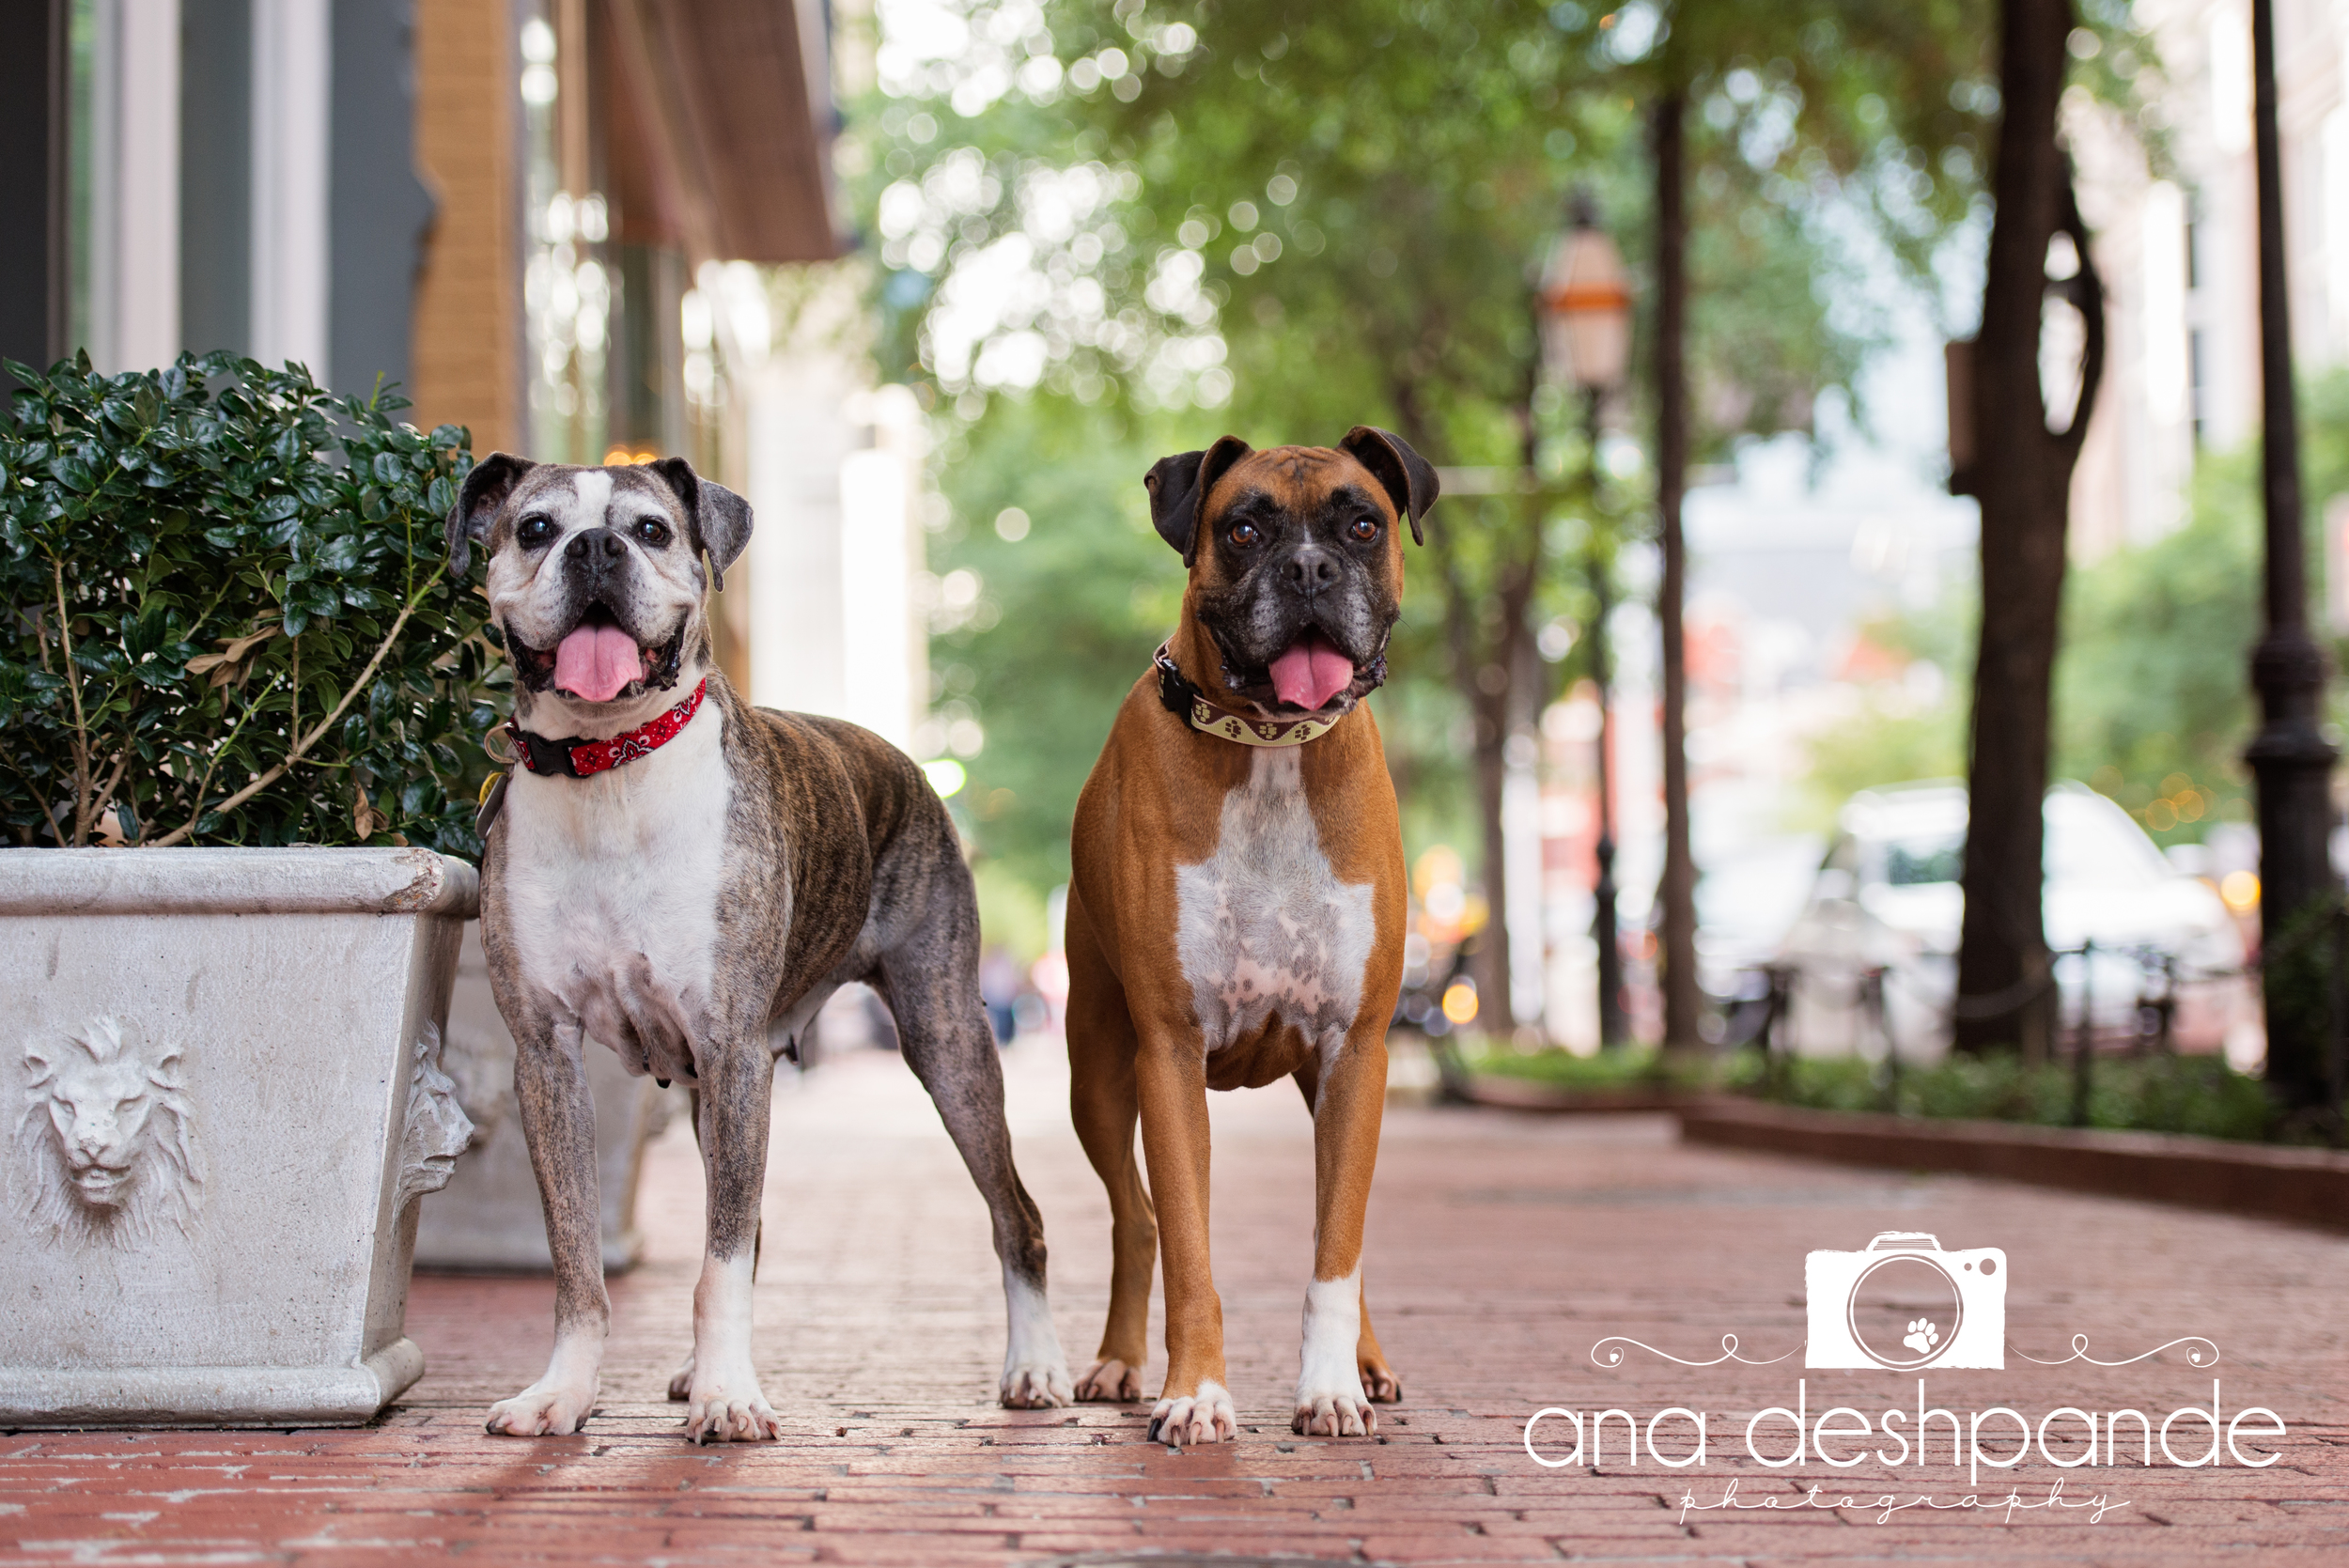 Penelope and Bandit showed me around downtown Fort Worth. Their sweet faces will be smiling at you throughout the month of February.